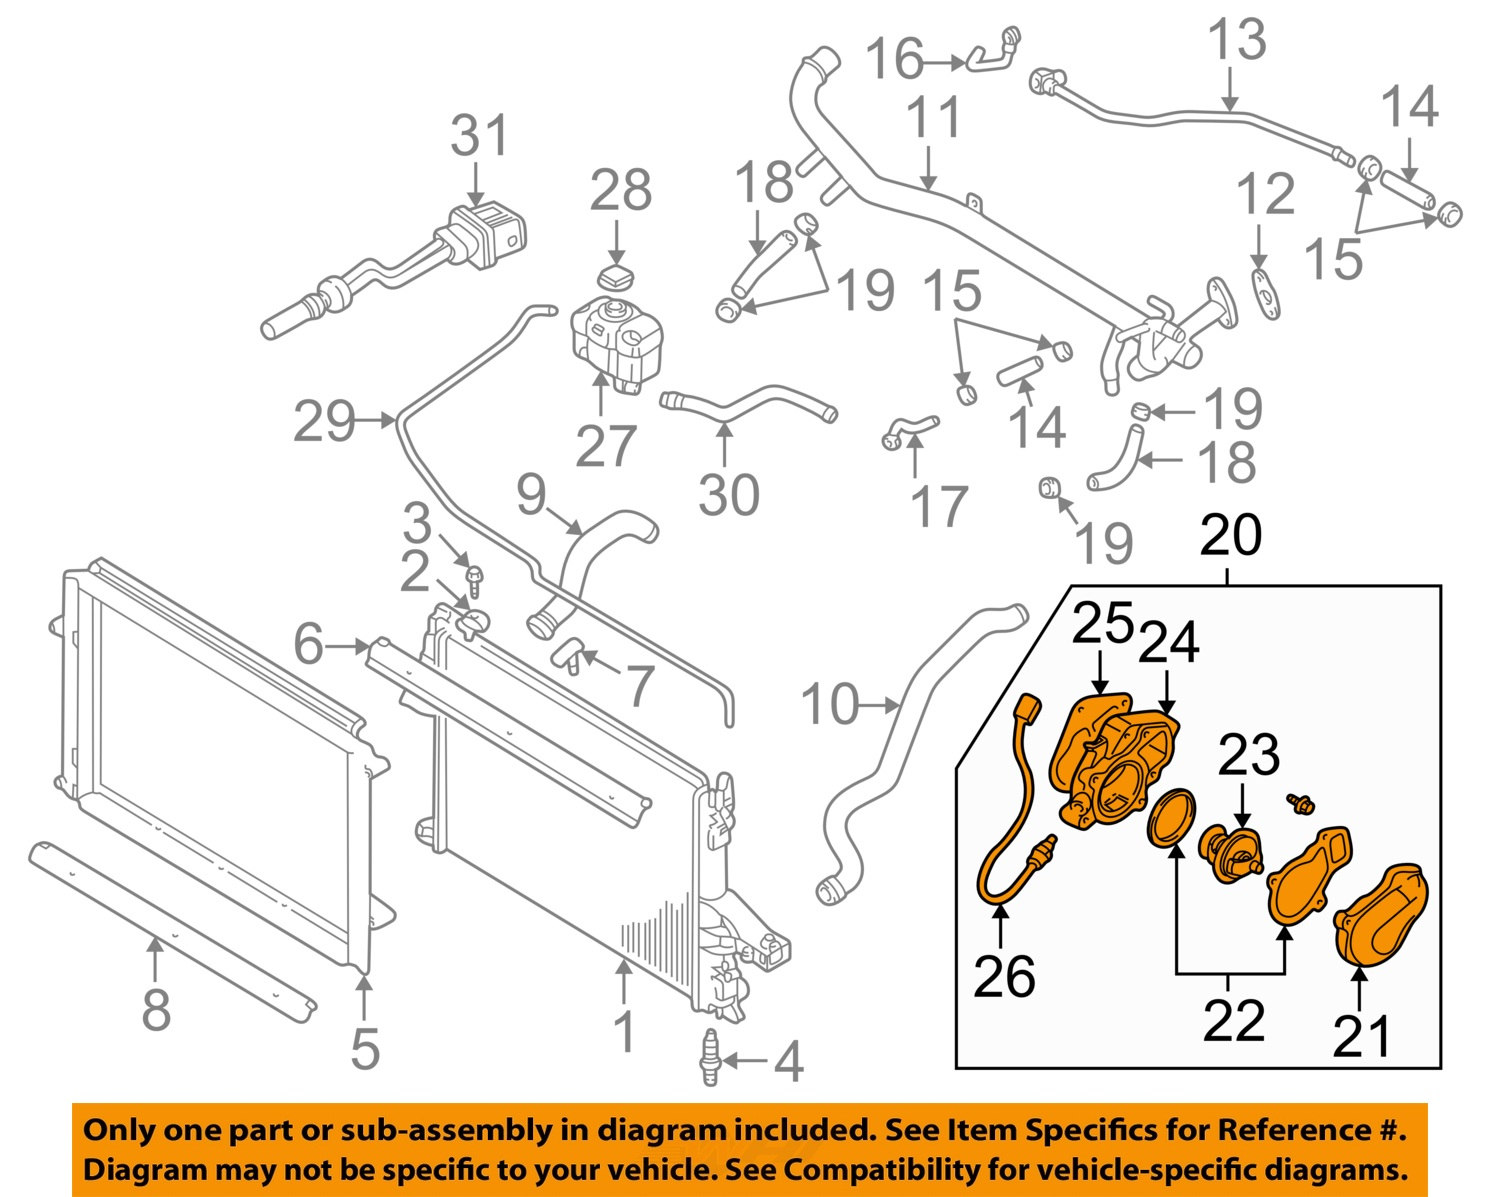 08 Volvo Xc90 Alternator Diagram Wiring Diagram For Light Switch \u2022  2004 Volvo XC90 Fuse Box Diagram 2008 Volvo Xc90 Engine Diagram